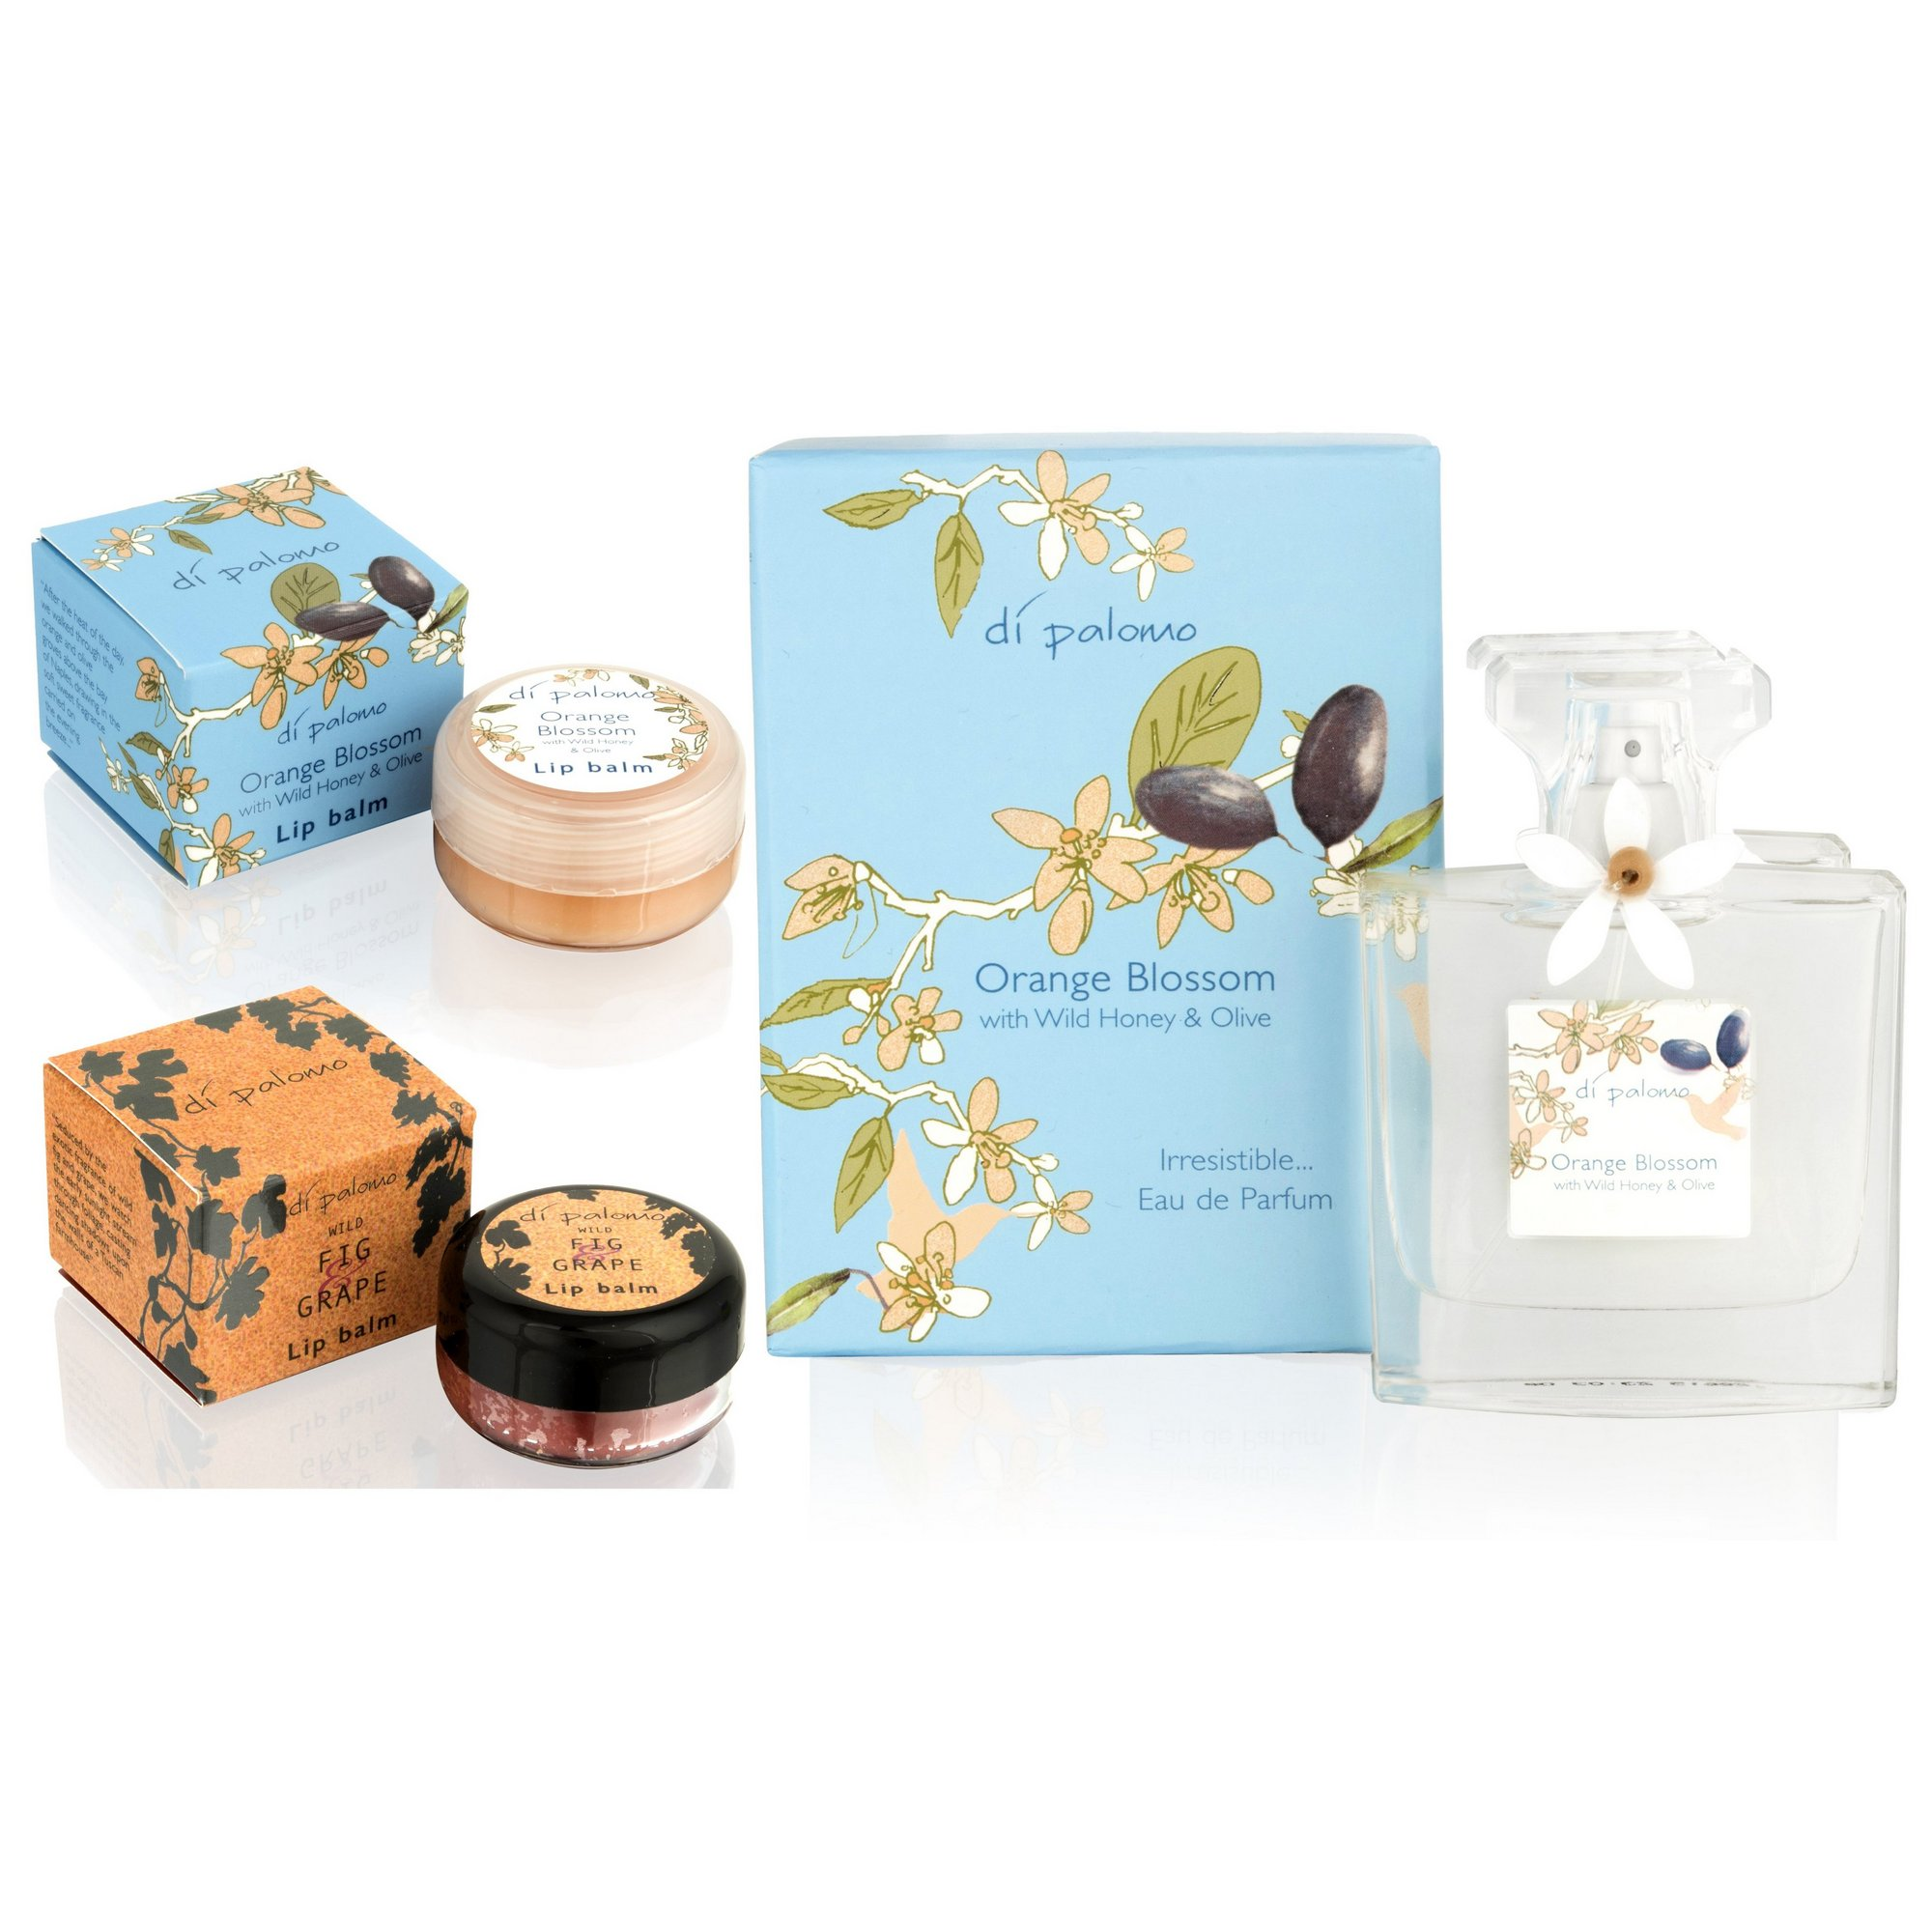 Image of Di Palomo Orange Blossom 50ml EDP and Lip Balm Set